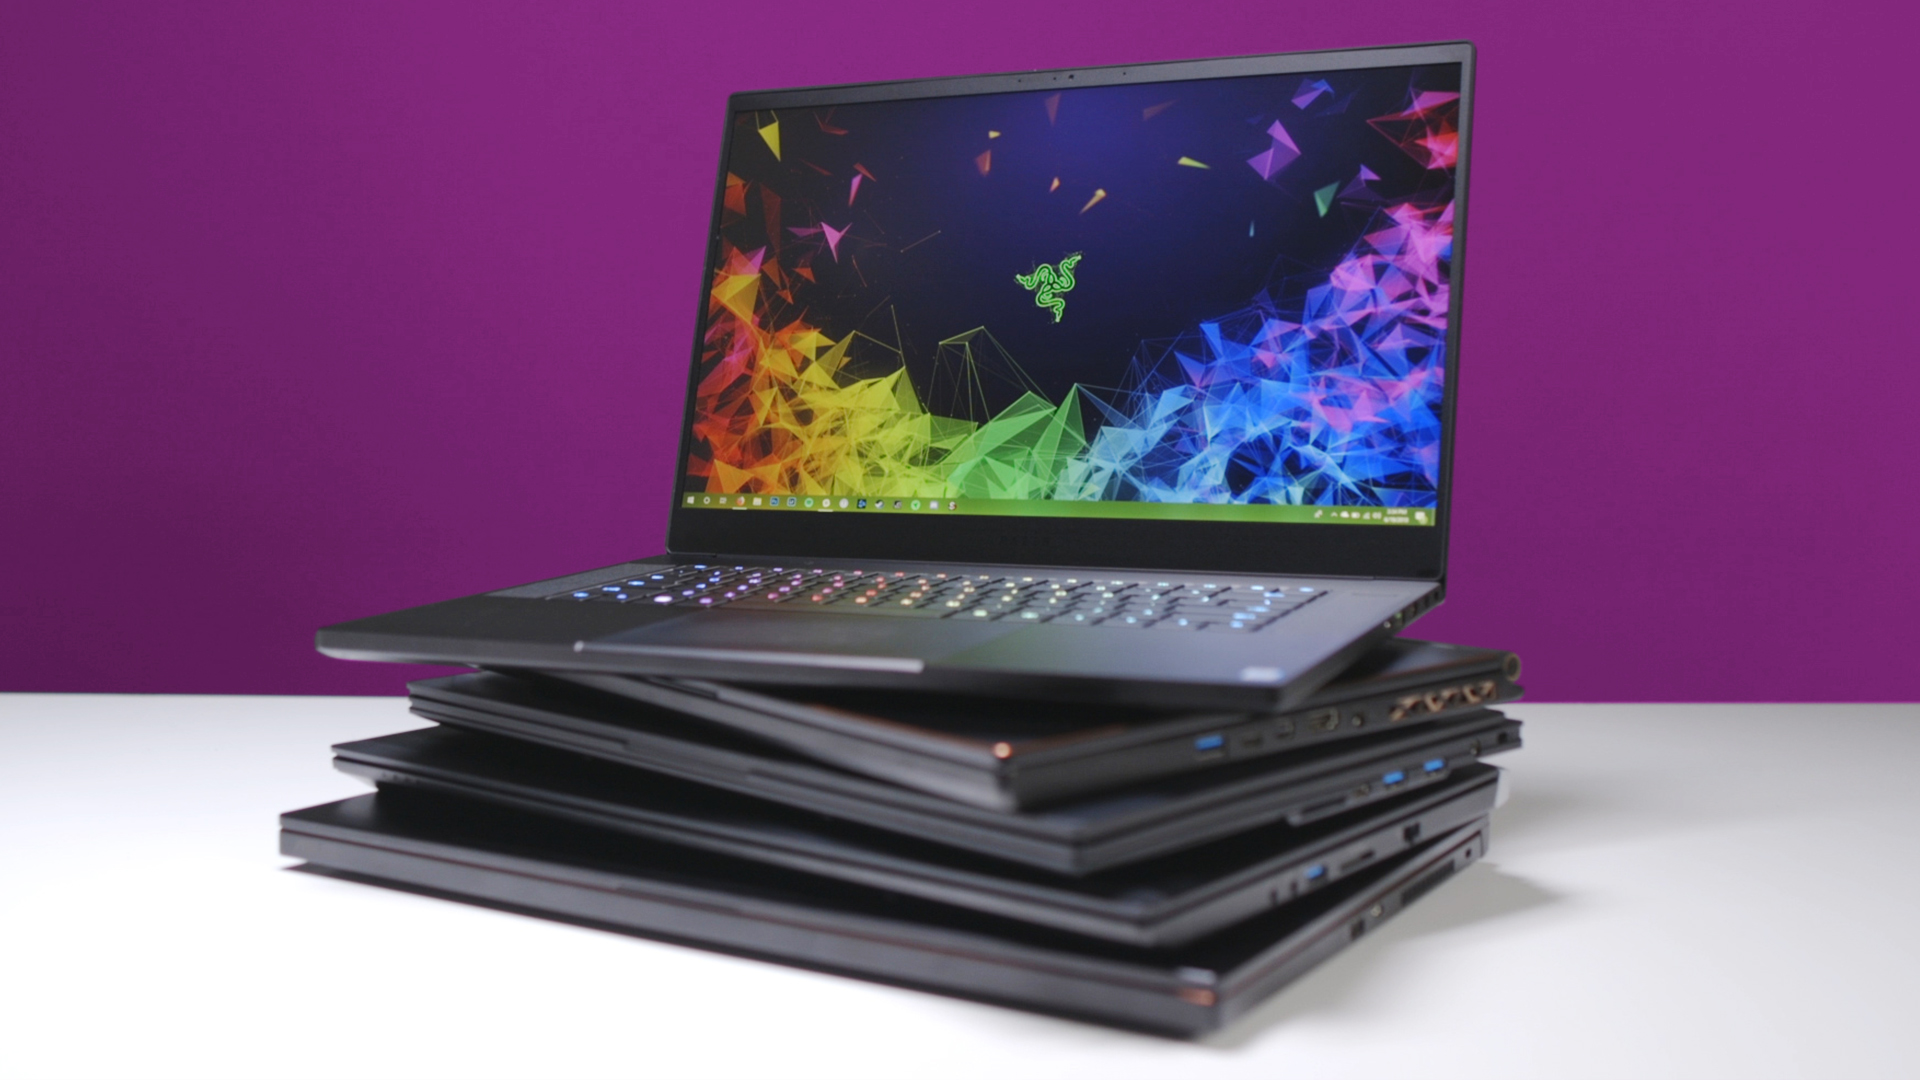 The best gaming laptops you can buy right now - The Verge